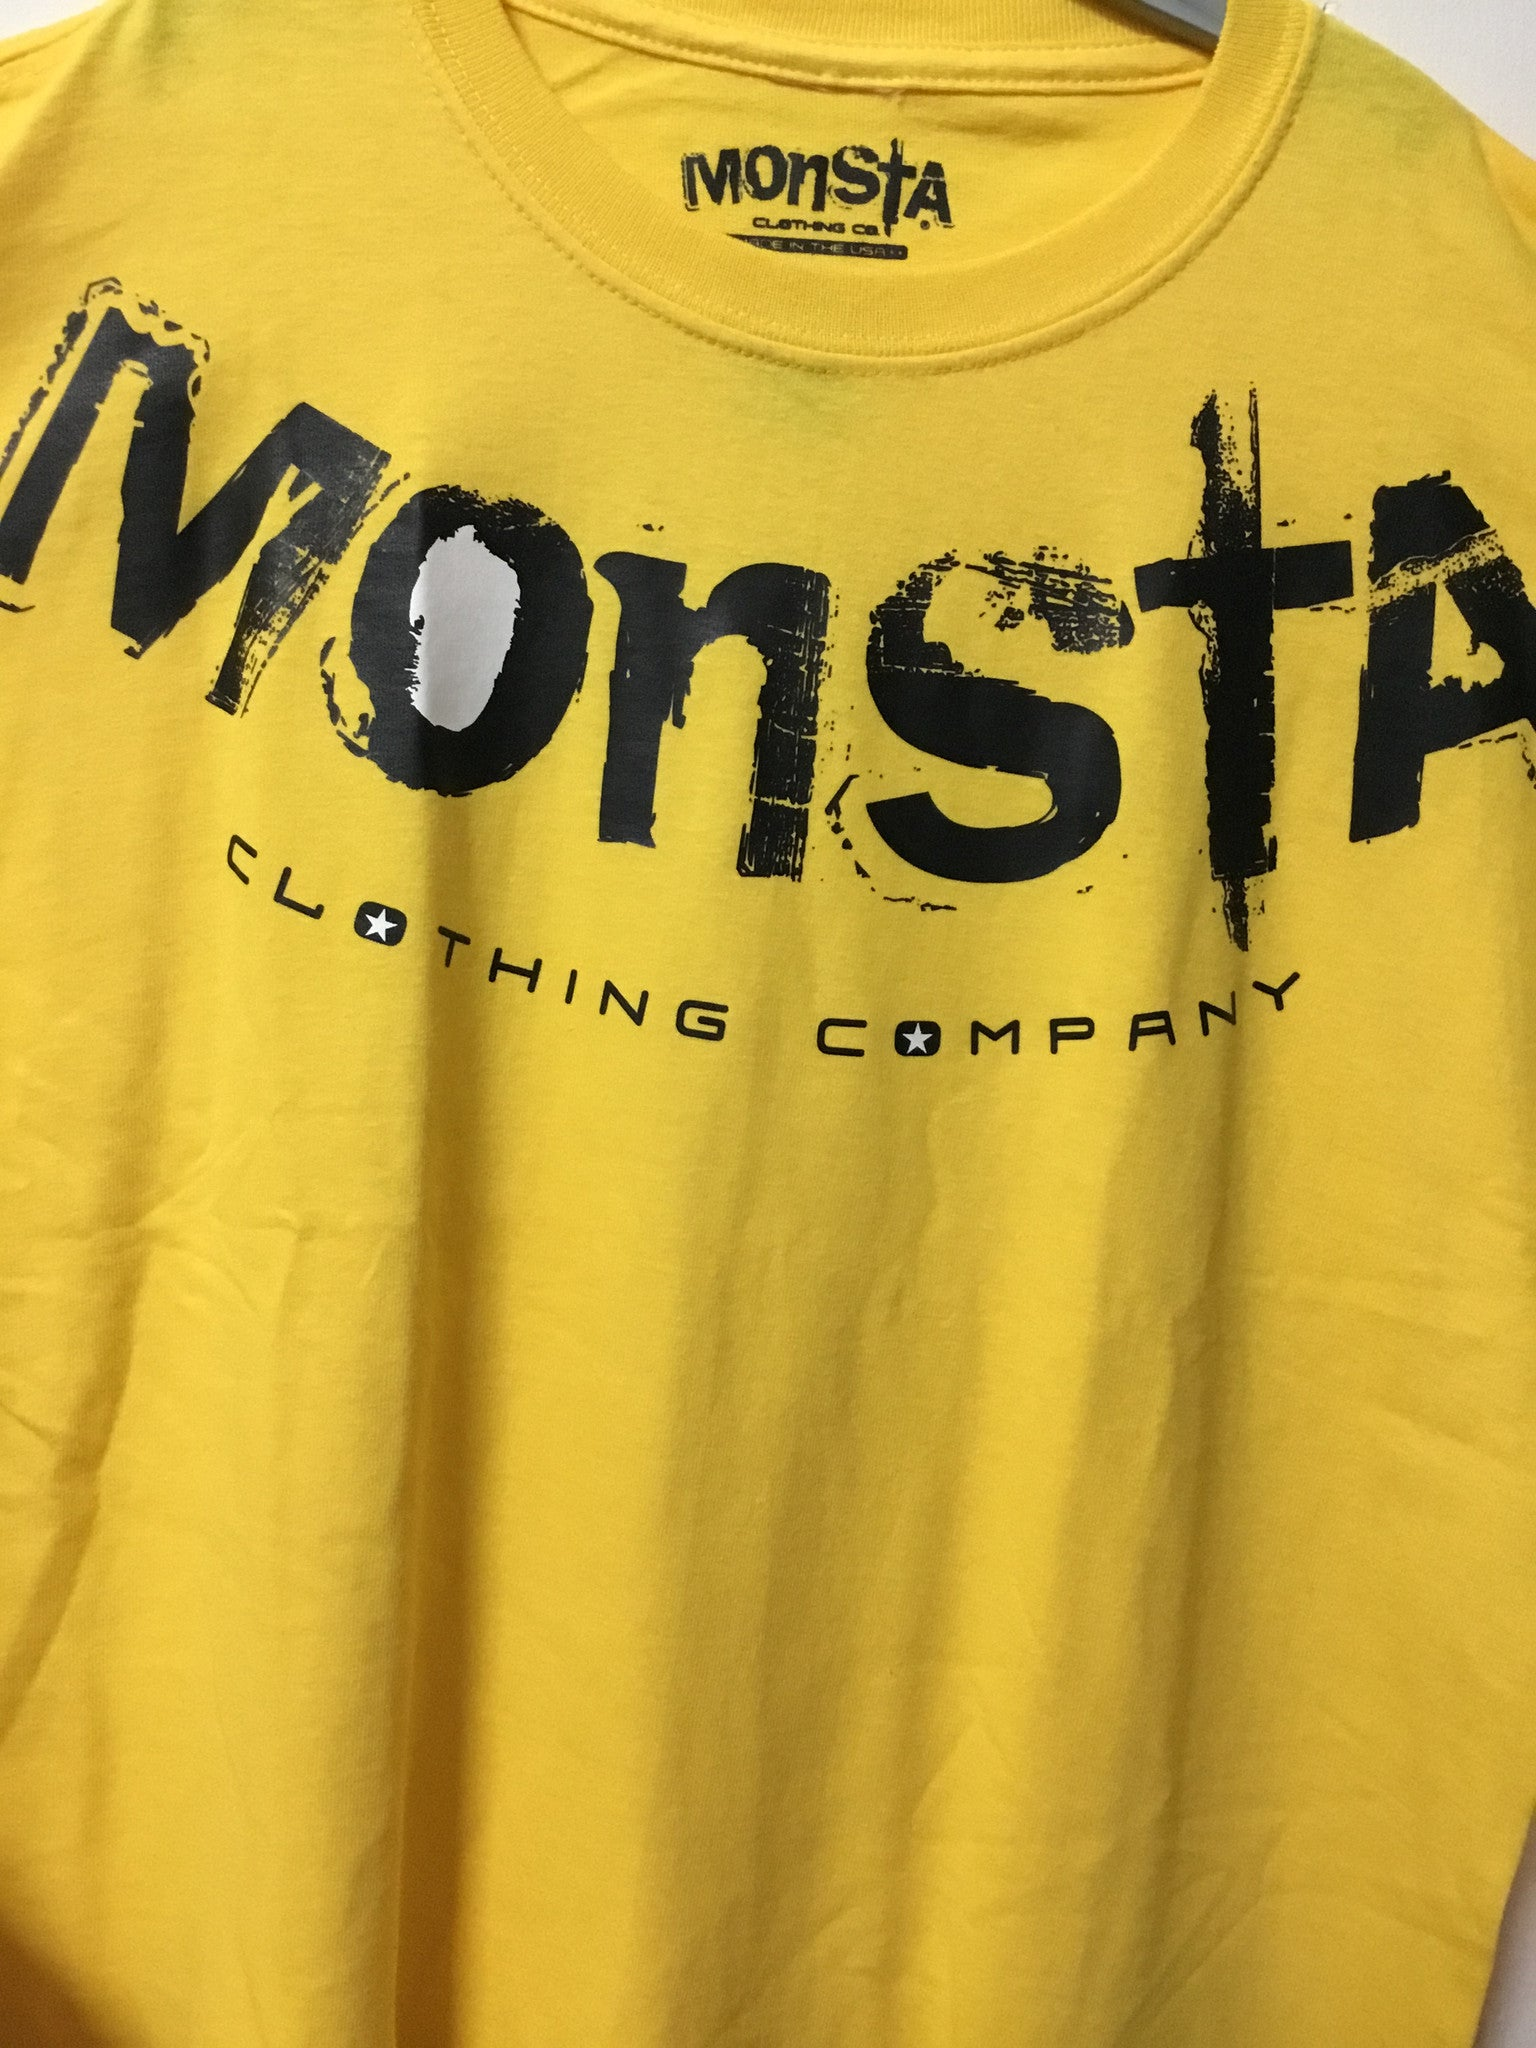 Tee Yellow Monsta tee Childrens - Monsta Clothing Australia